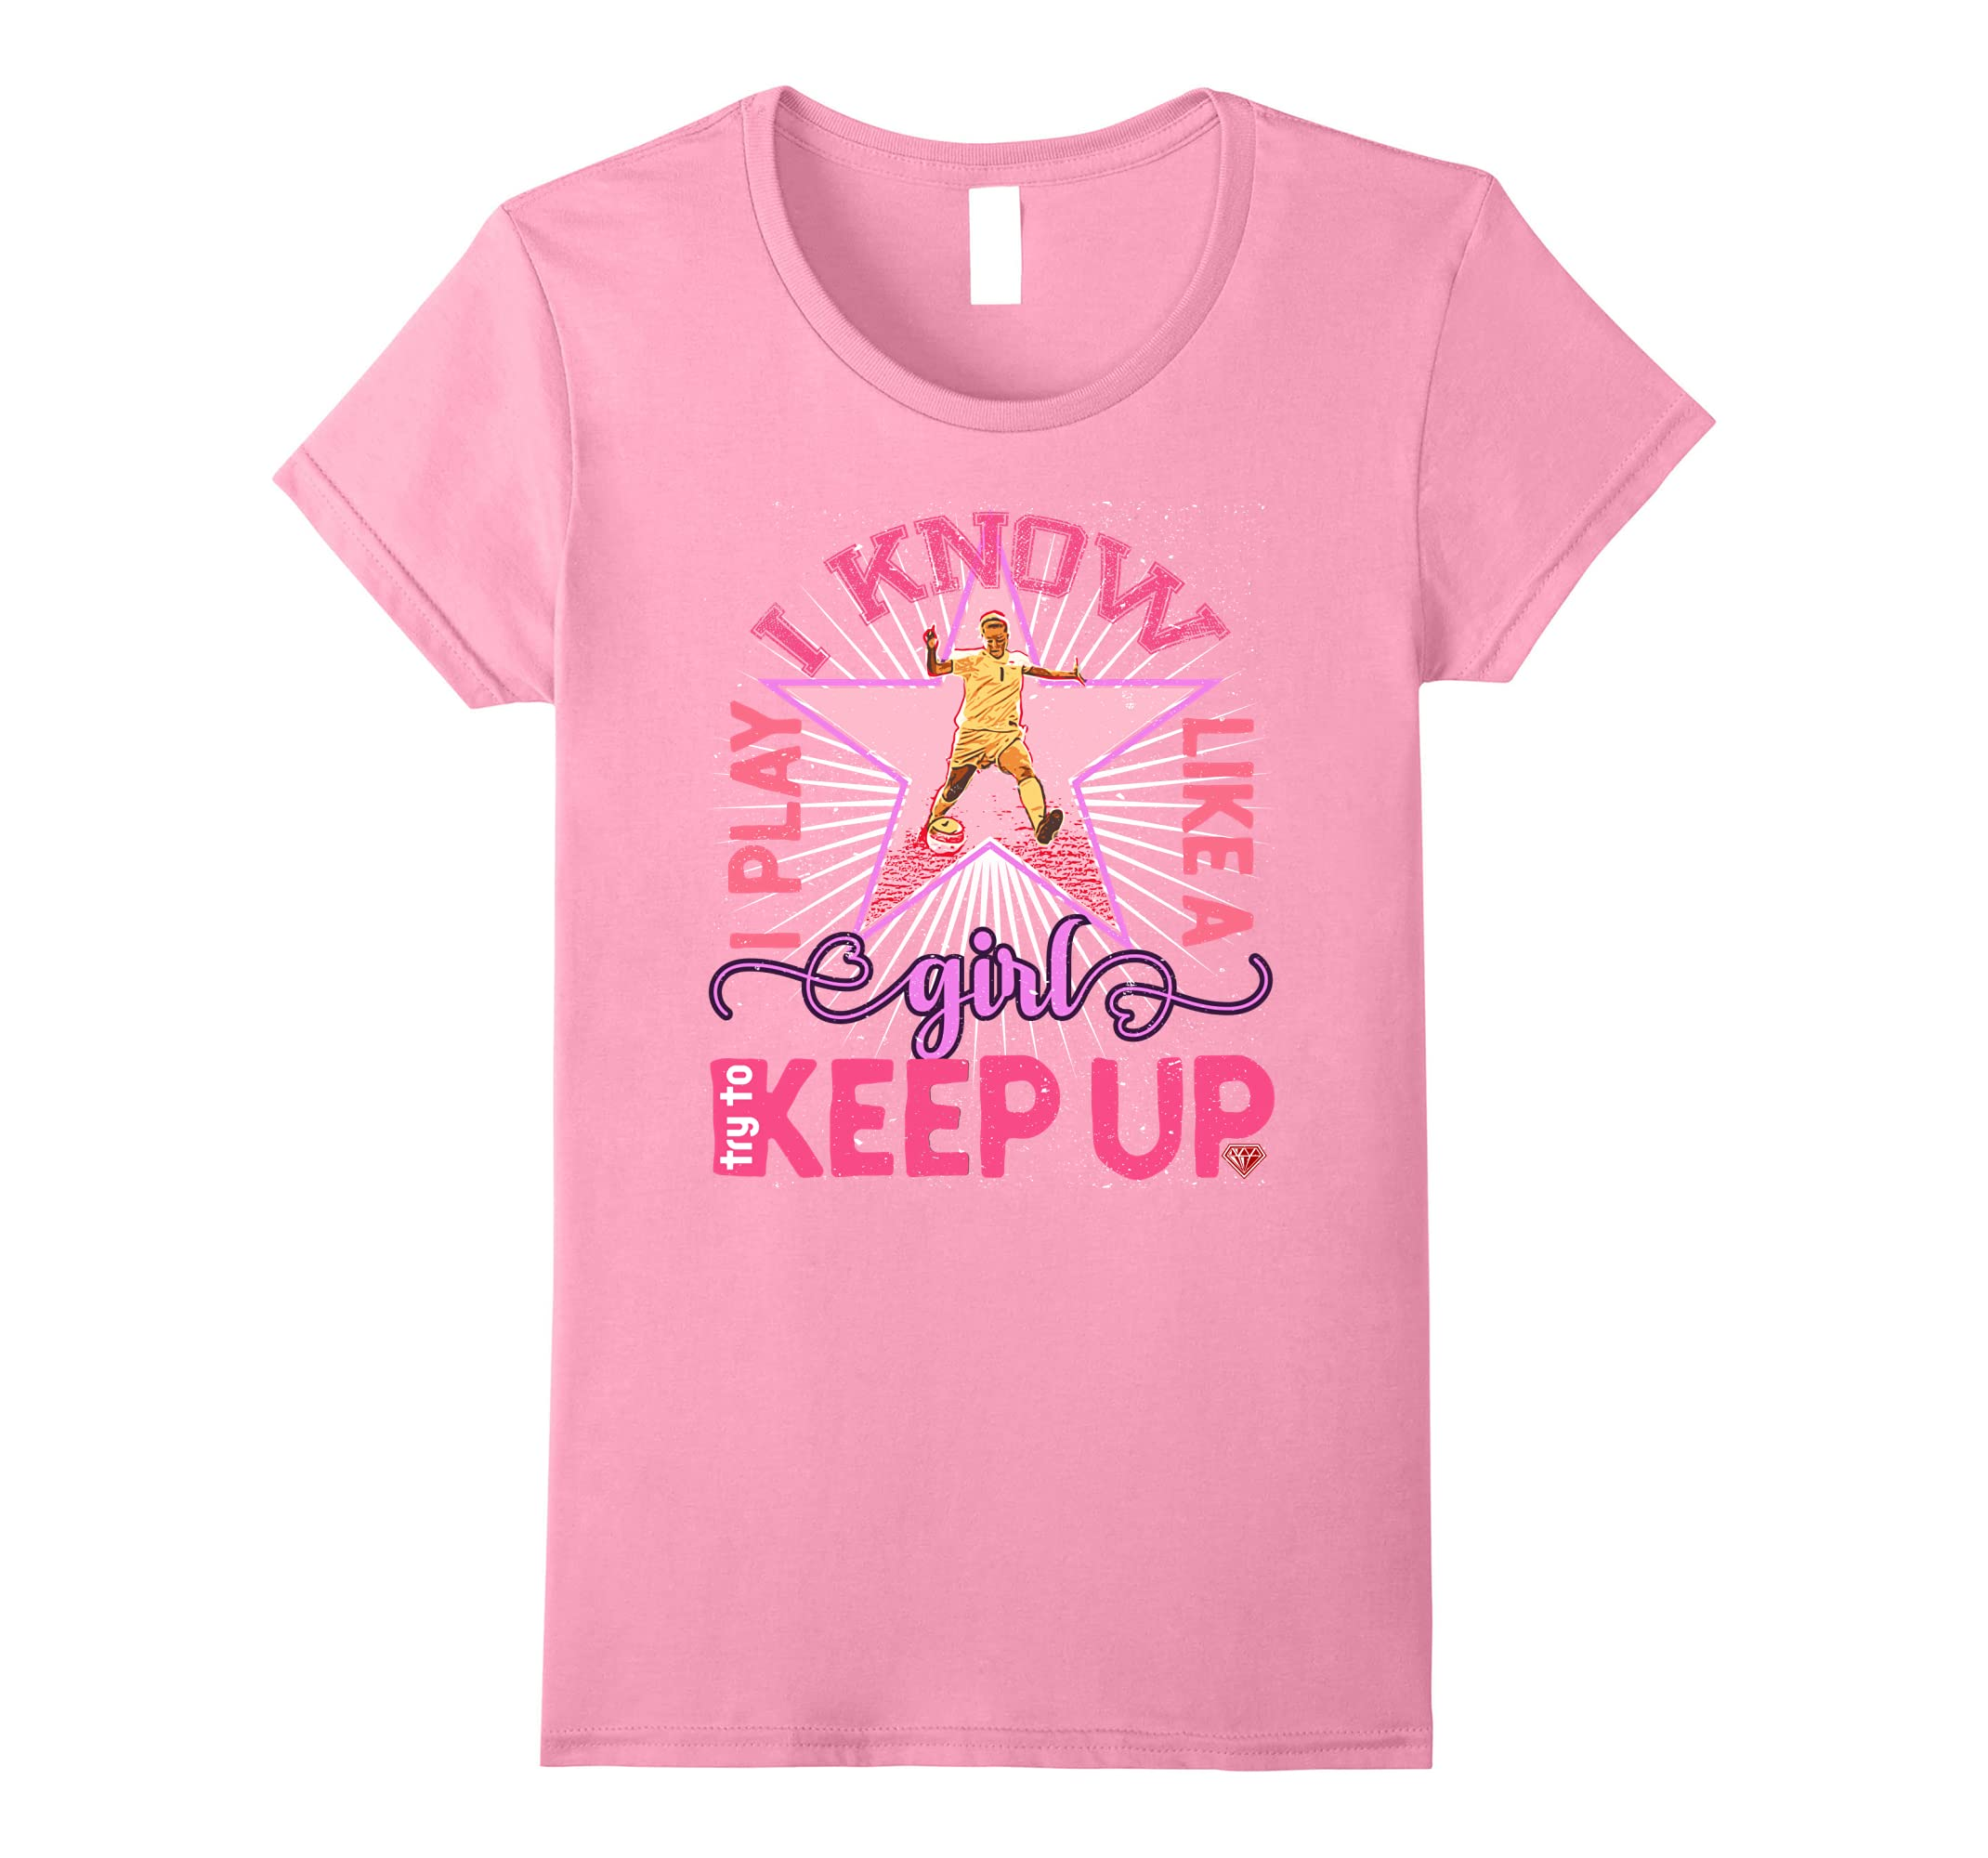 Soccer shirt for girls - I play like a girl try to keep up-RT